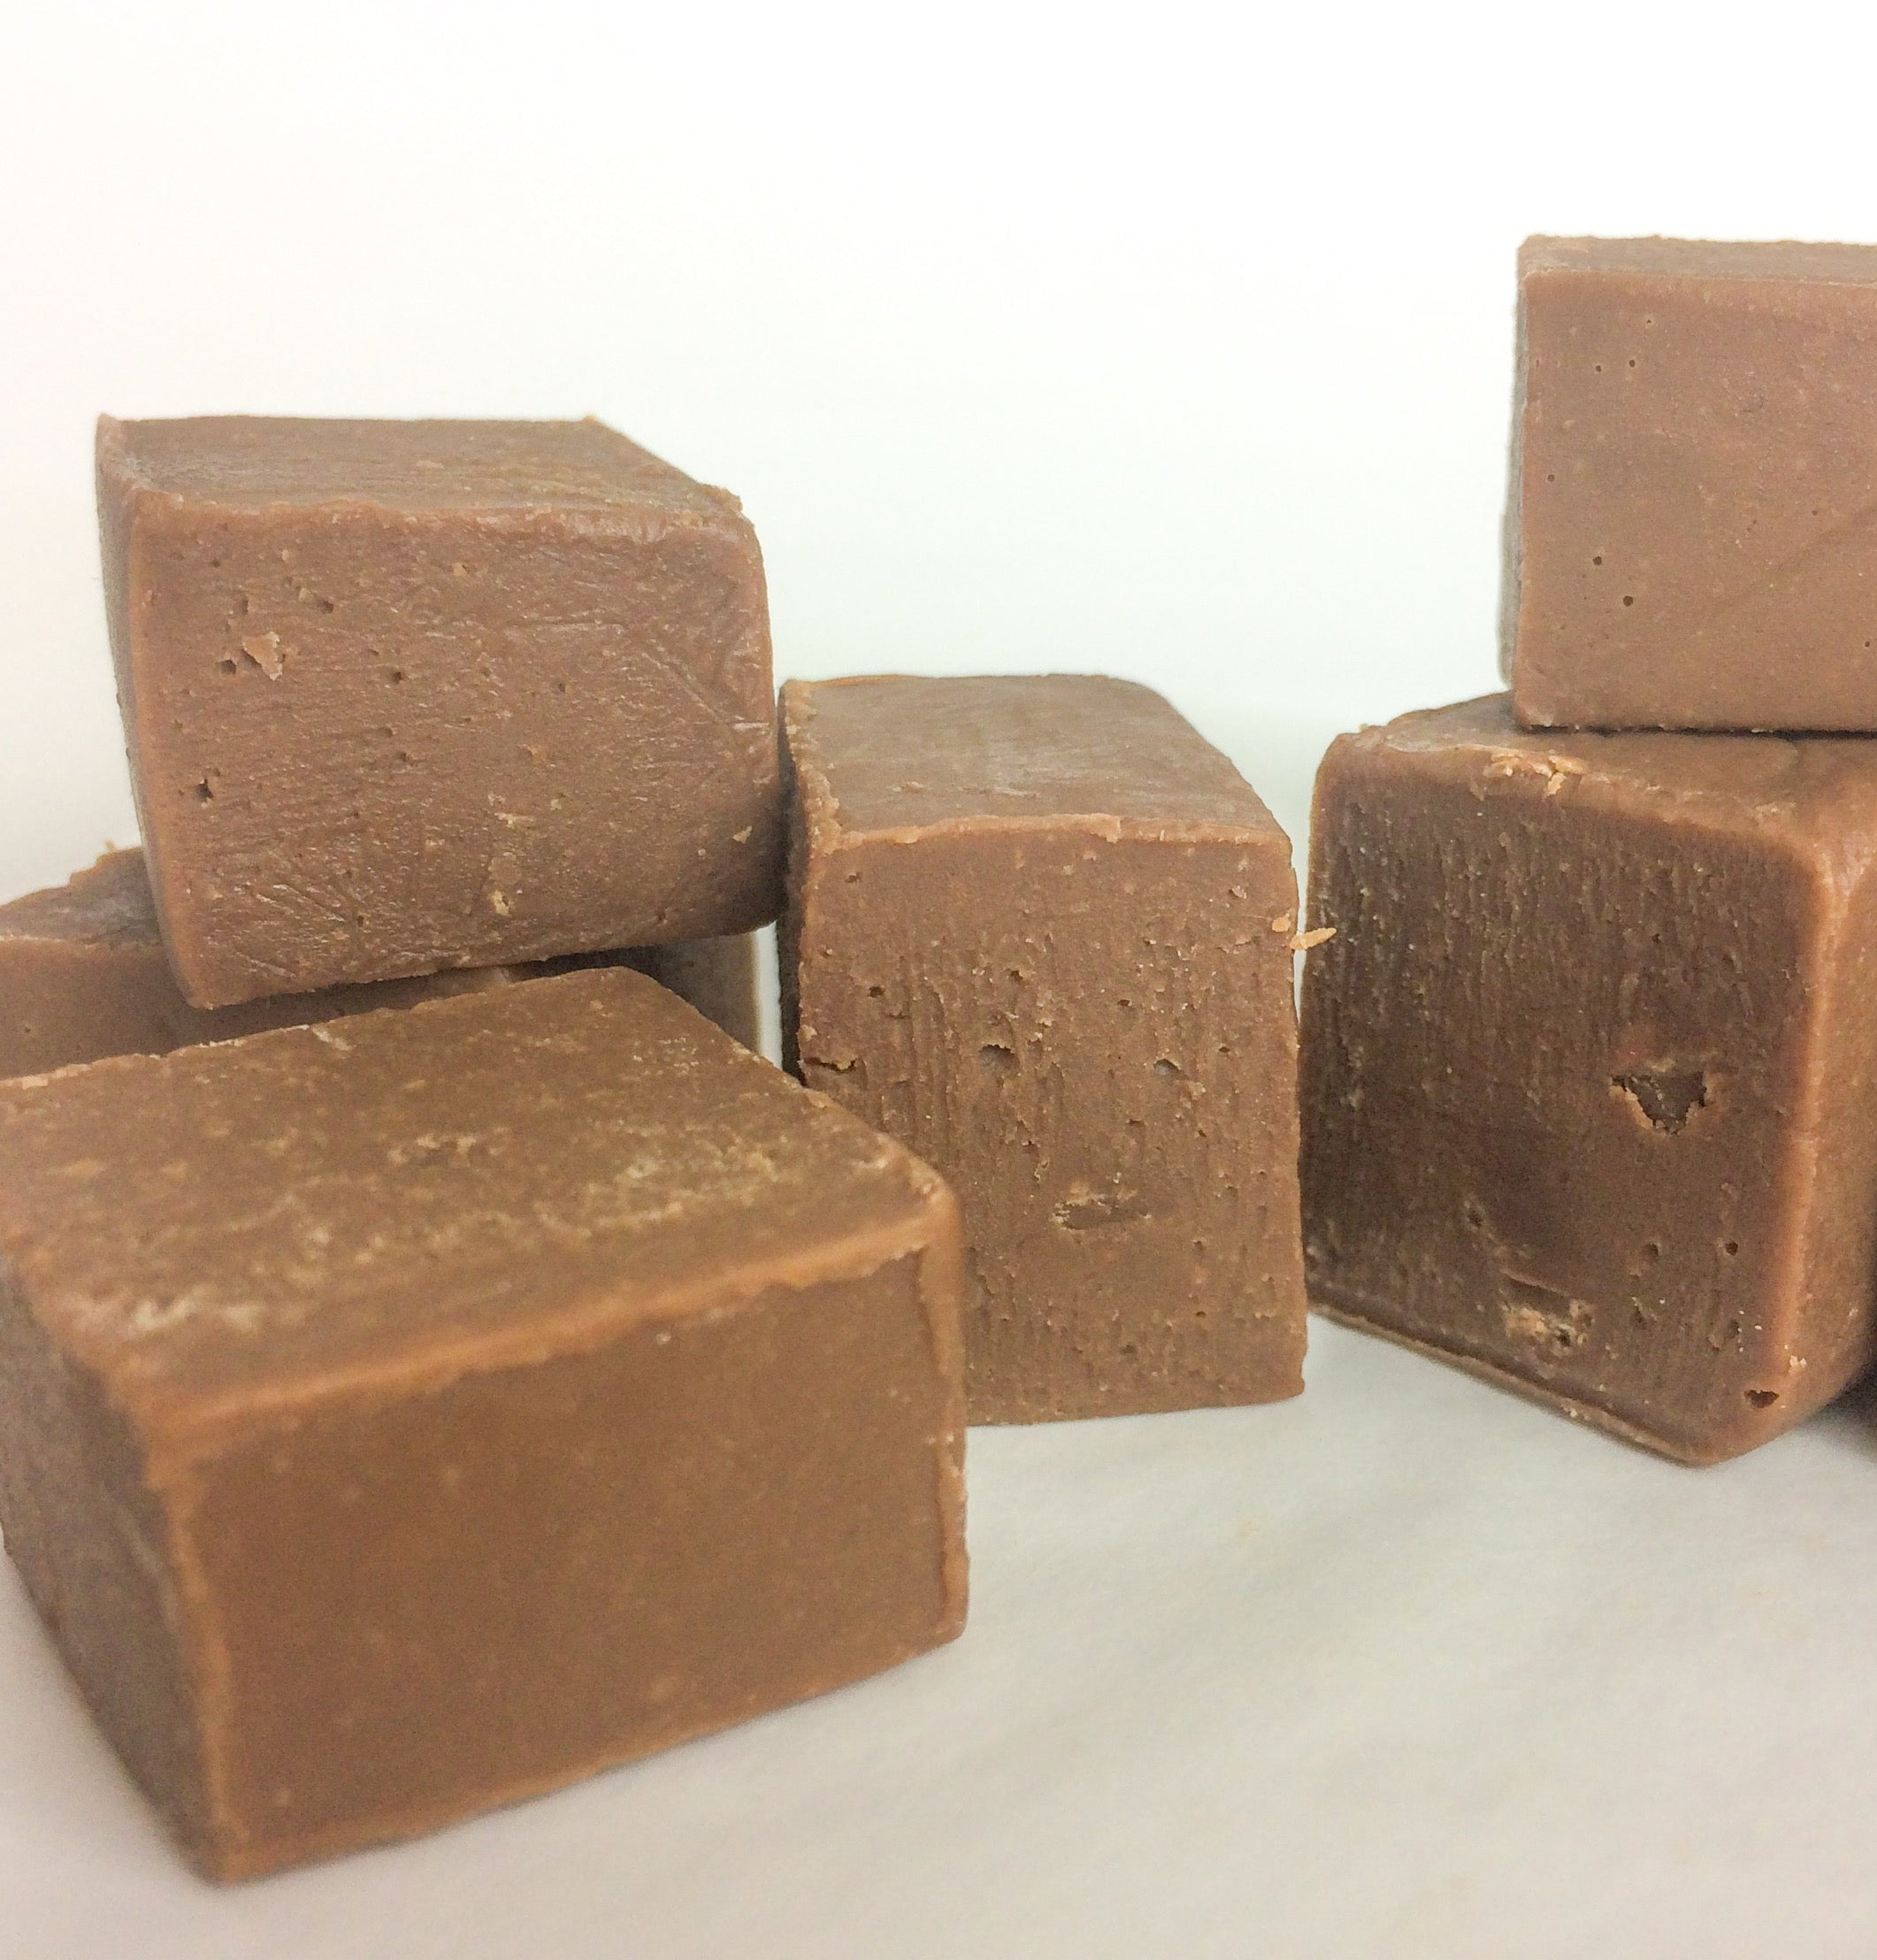 Salted Caramel (Milk Chocolate) Fudge